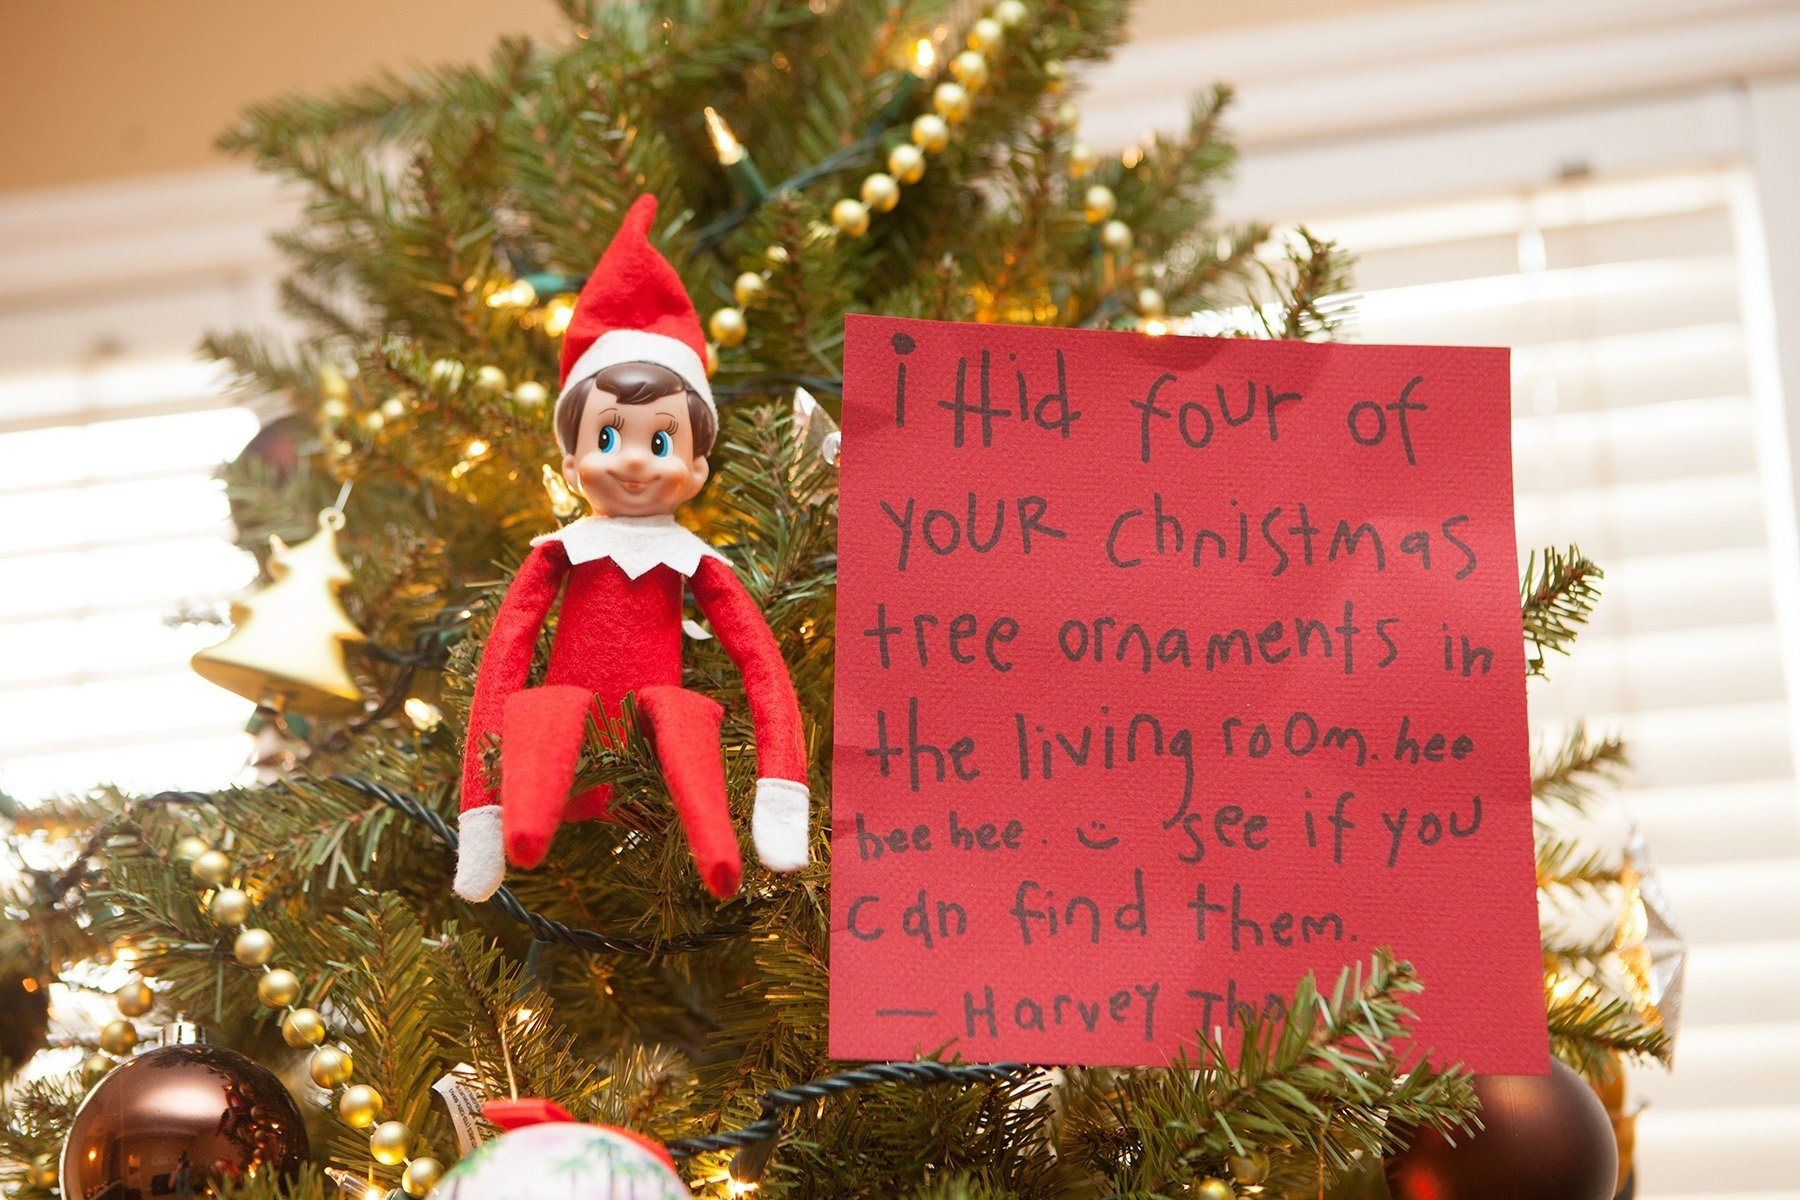 10 Fantastic Elf On The Shelf Ideas For Toddlers more than 40 easy elf on the shelf ideas 2 2021